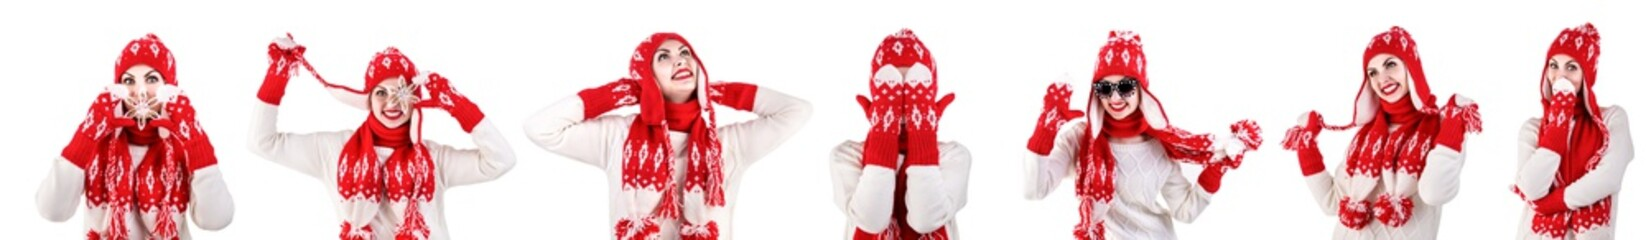 Girl in a knitted hat,scarf and mittens.Red with white pattern.Beautiful,warm,knitted and crocheted items.Collage